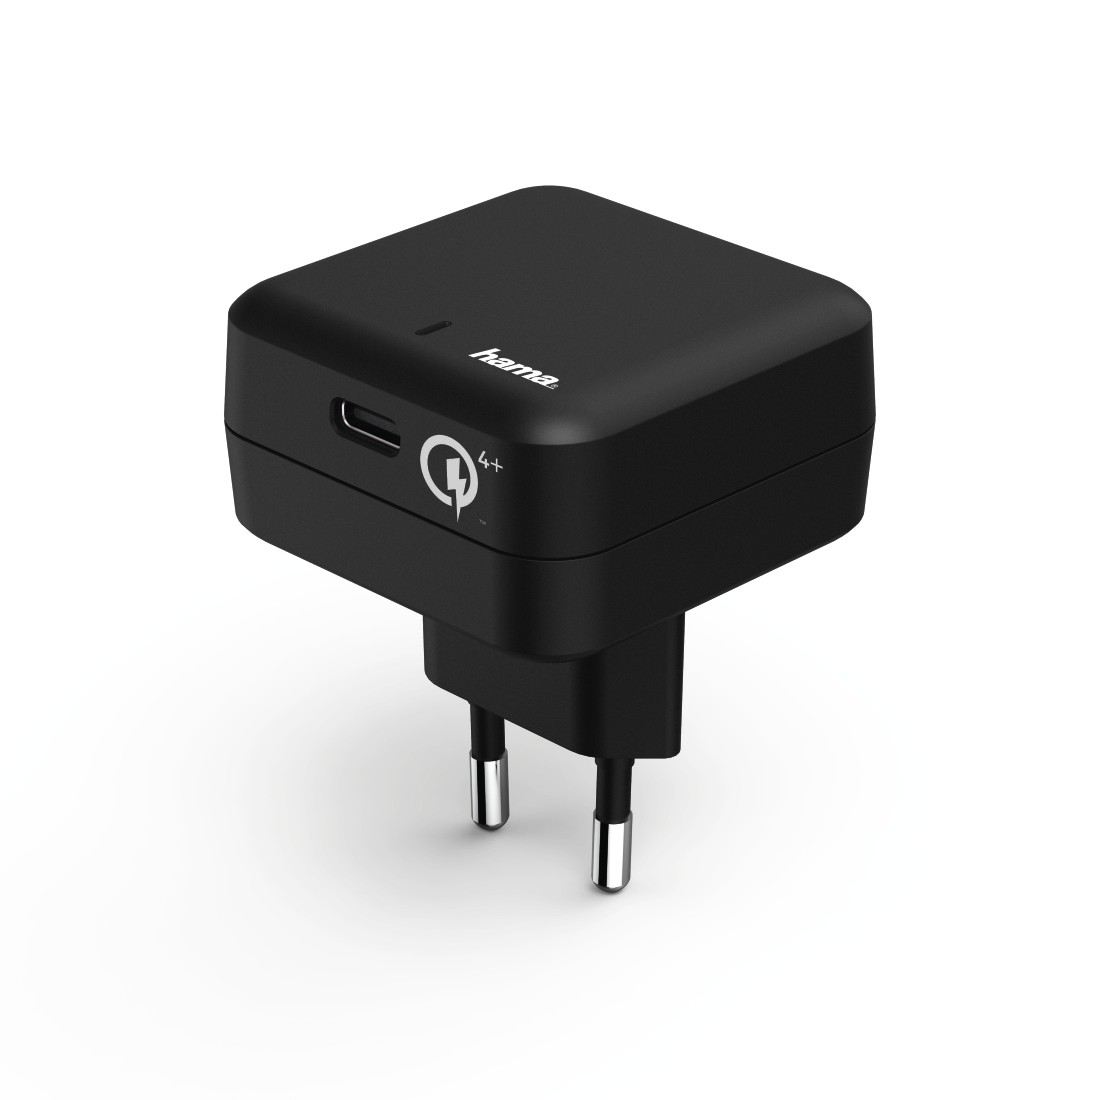 "abx High-Res Image - Hama, ""Qualcomm® Quick Charge™ 4+ / Power Delivery (PD) Charger, black"